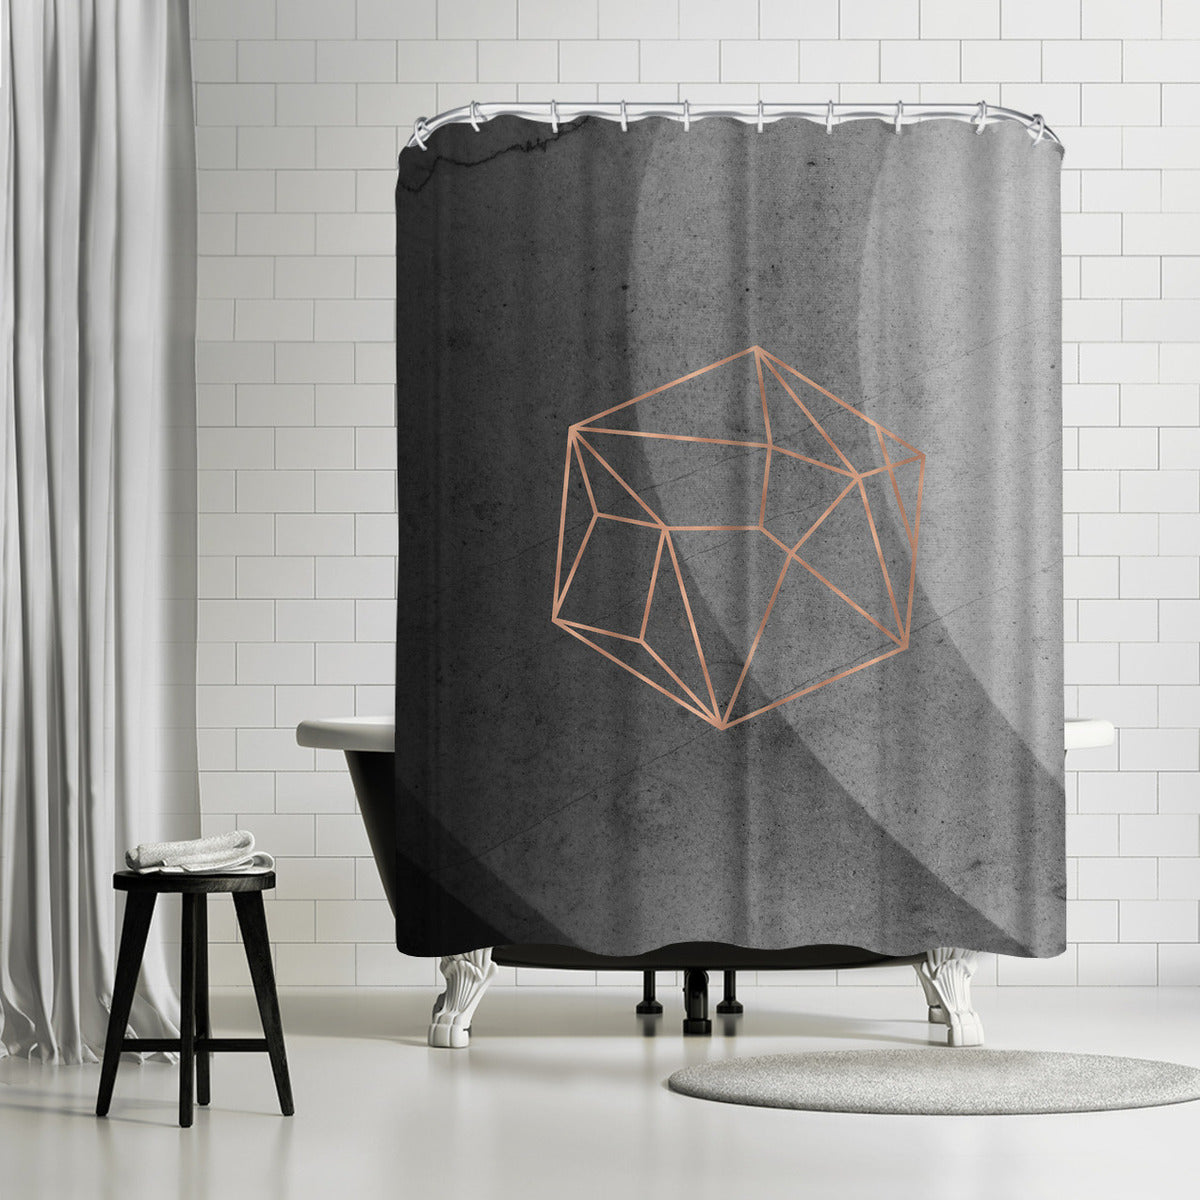 Geometric Solids On Marble by Emanuela Carratoni Shower Curtain -  - Americanflat